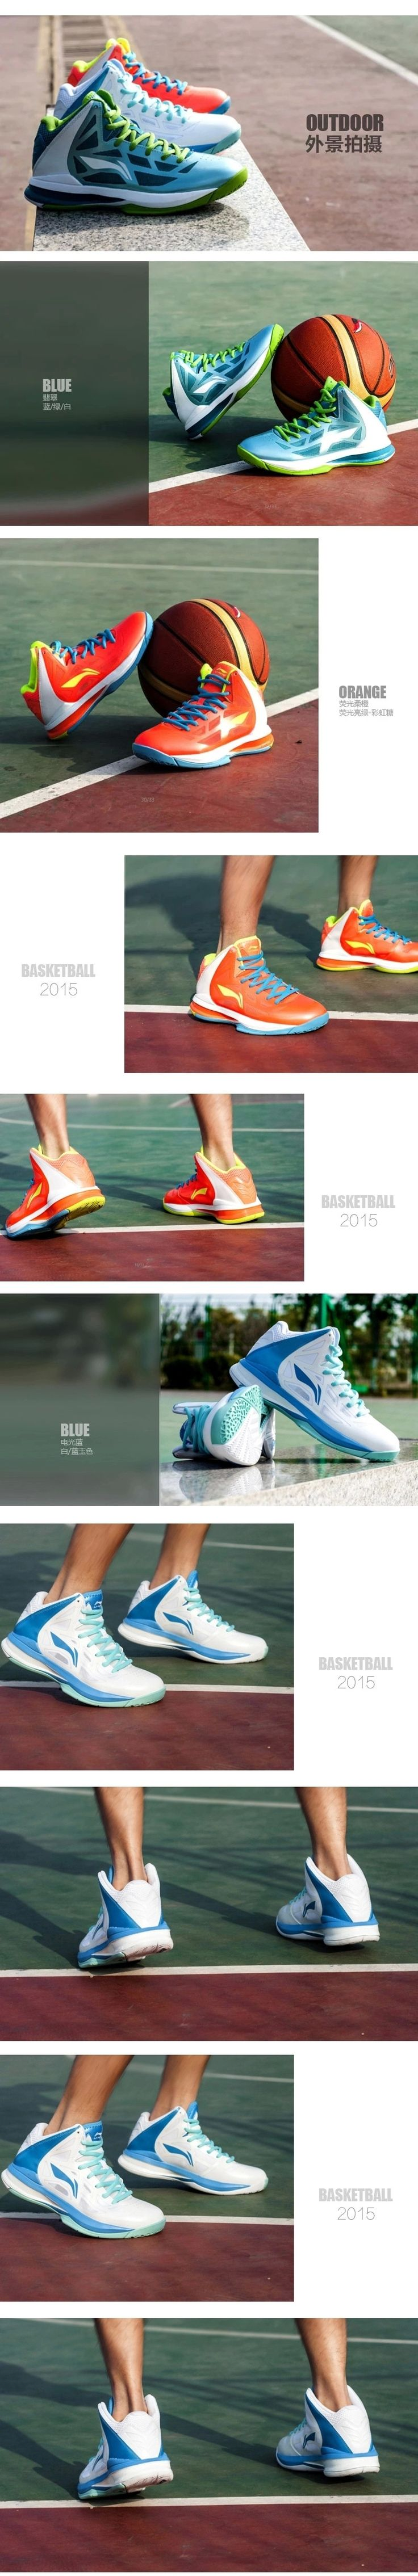 Li Ning CBA BB Lite 2 has a a series of styles, which contains Jade, Bloodsword, Iceberg and Skittles professional basketball shoes. The name of each pair of shoes has its special meaning, such as skittles professional basketball shoes inspired from skittles, which is a sweet fruit candy products from the United States Arrow candy company, also called Rainbow sugar by Chinese. so they are very unique.